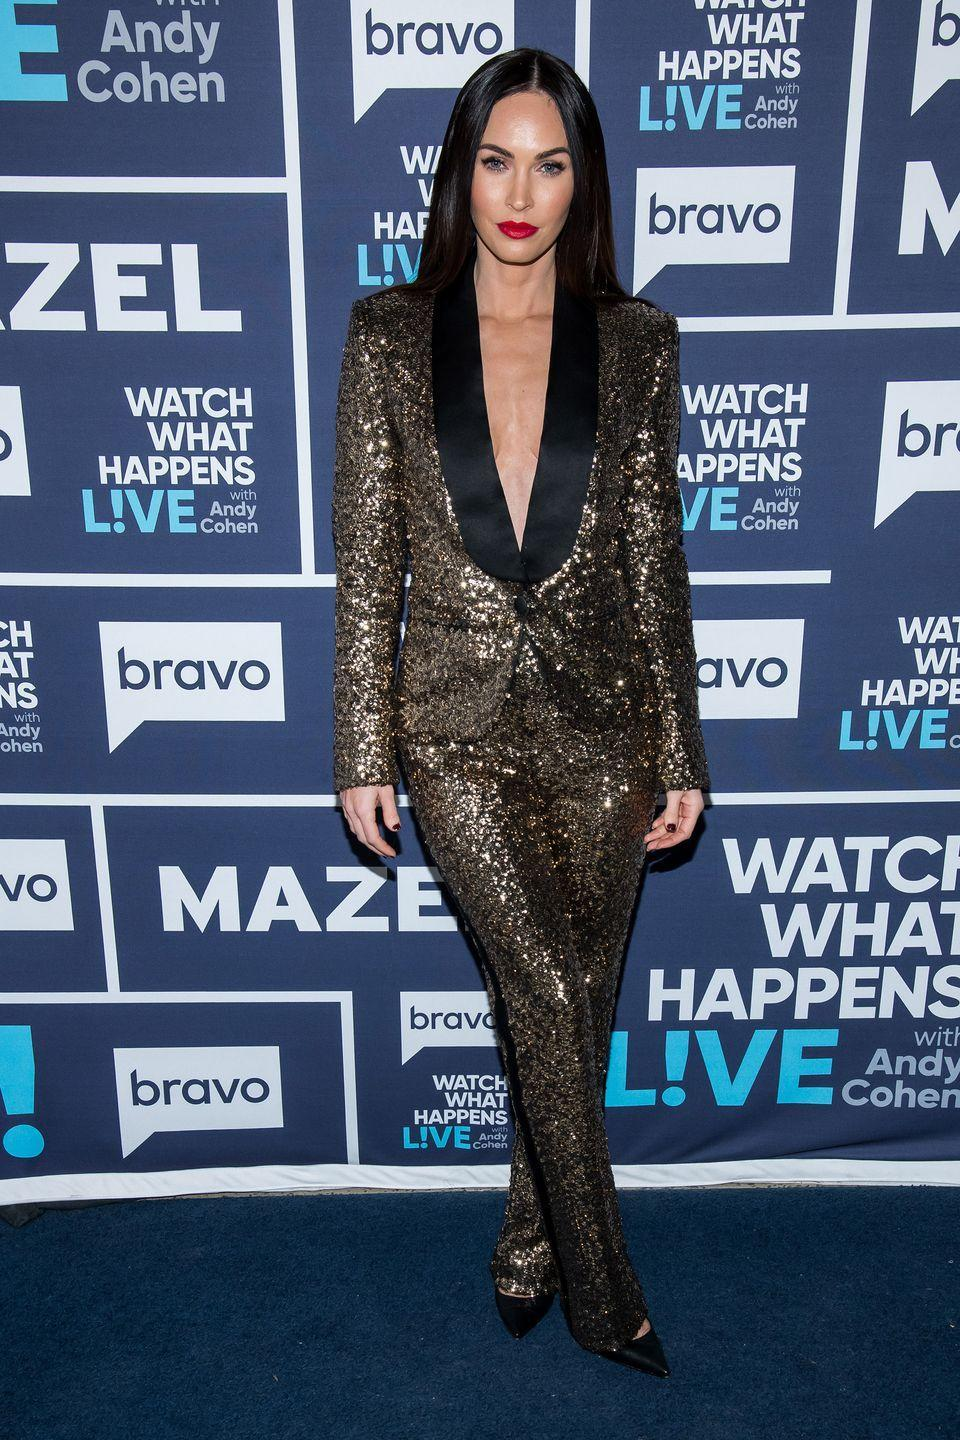 <p>The actor wore a festive gold tux and black pointed-toe heels, with a bright red lip and straight black hair for the TV show appearance. </p>